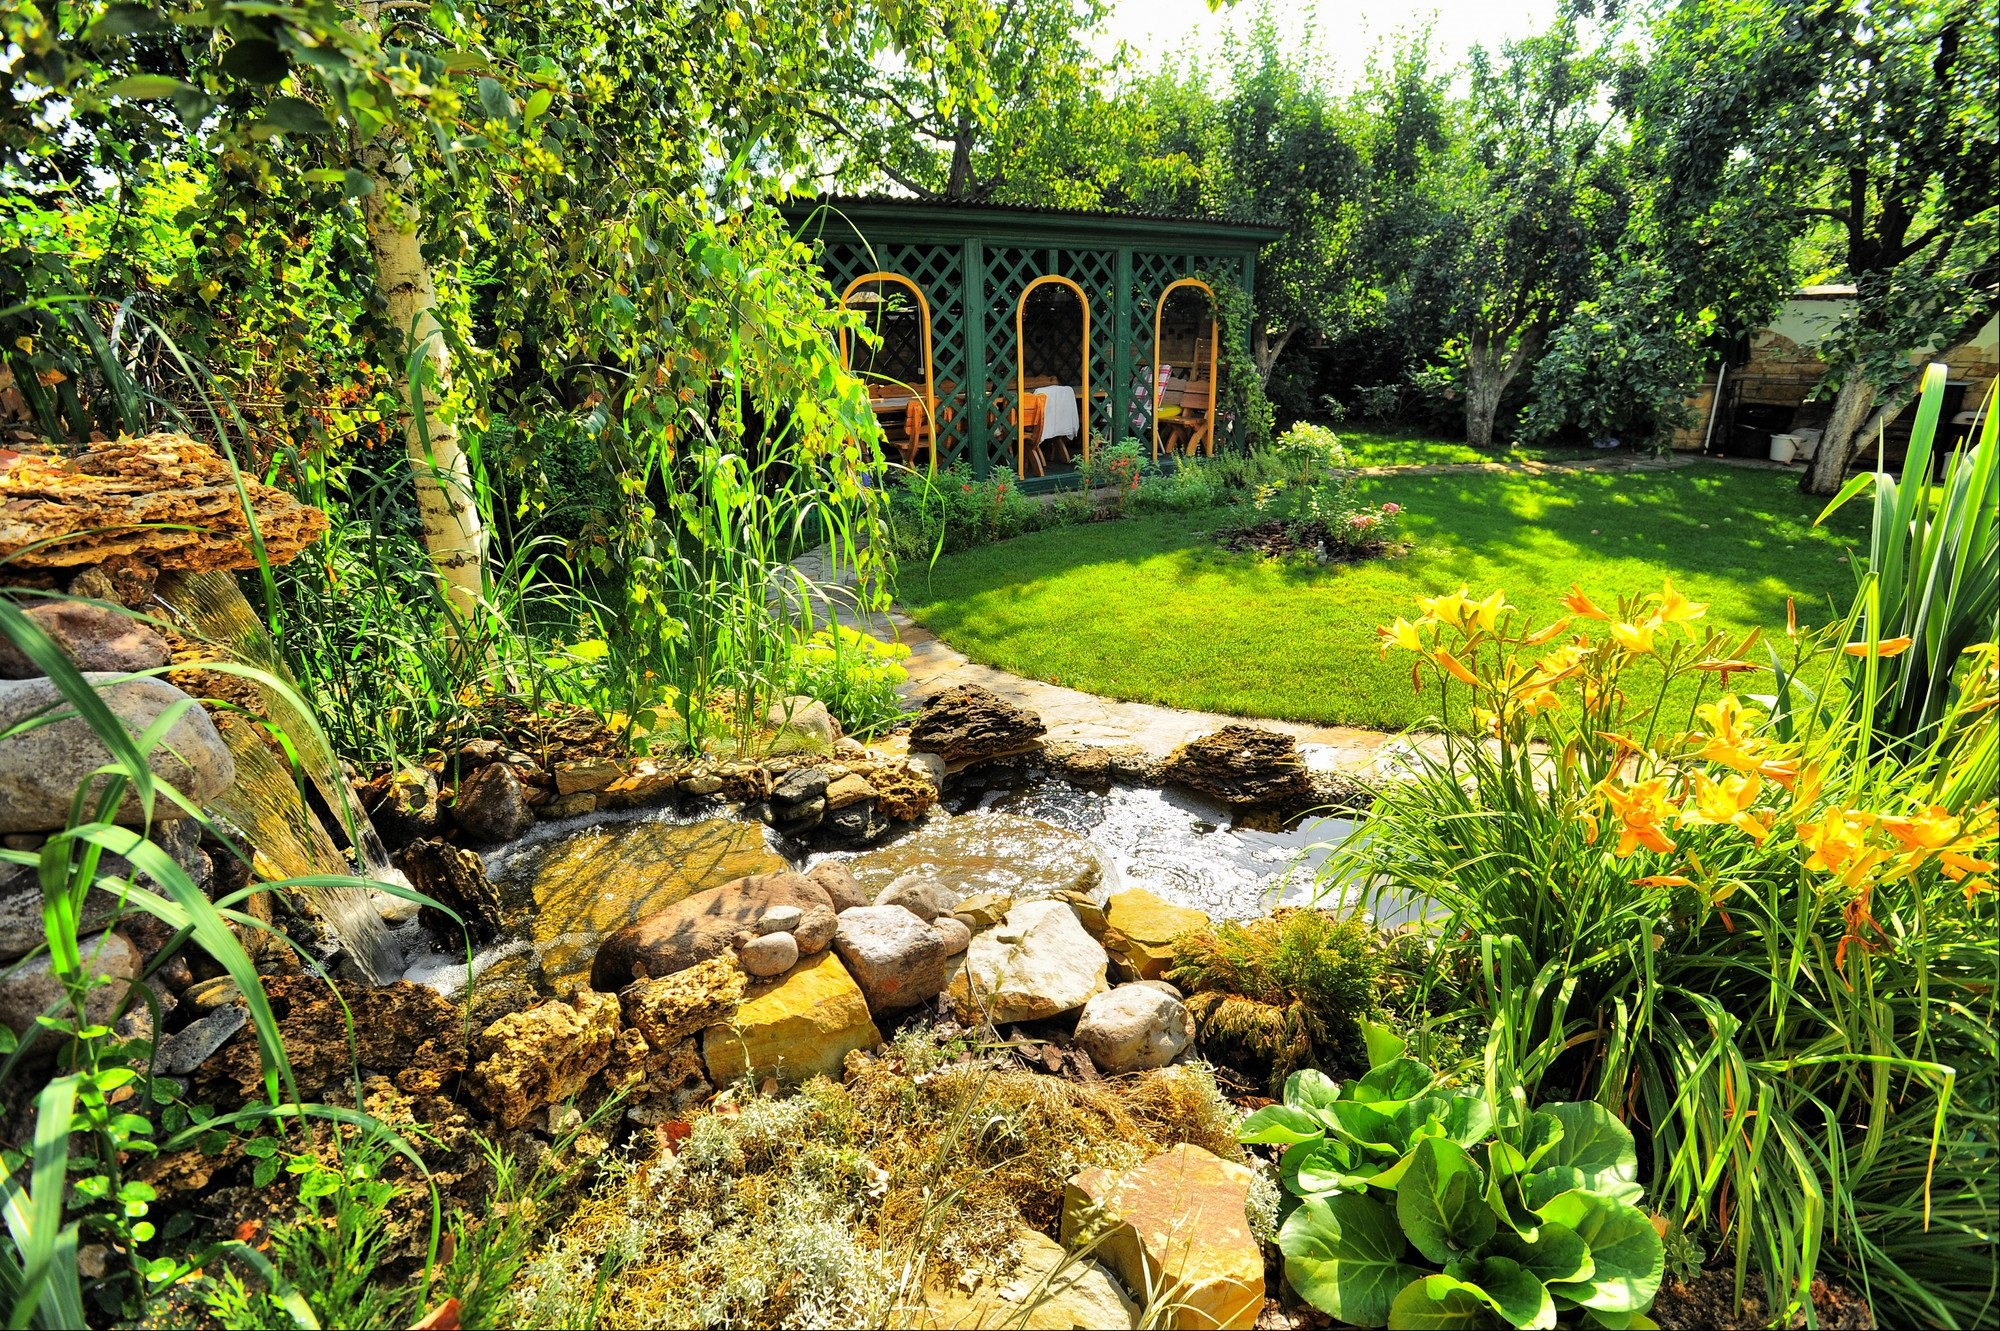 secluded garden area with summer house and waterfall